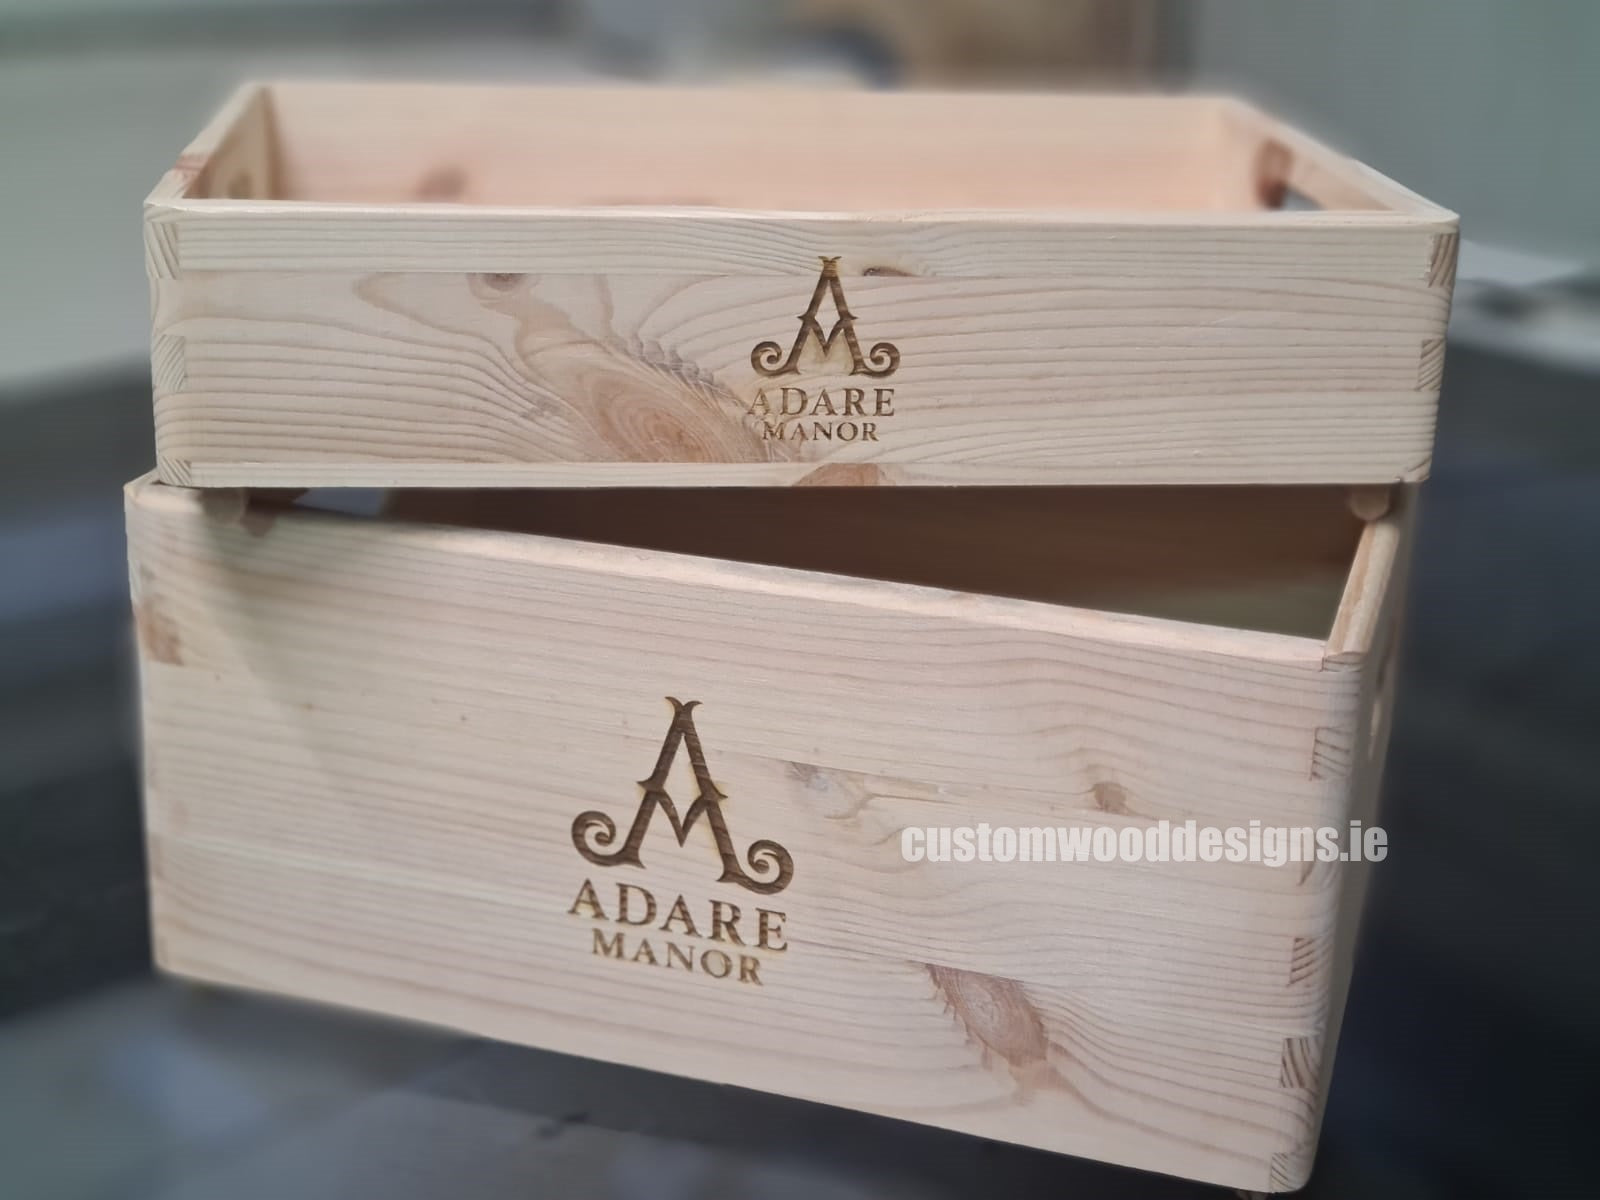 Custom Wood Designs - Adare Manor Branded crates wood crates ireland promotional products sustainabile products corporate gifts ireland